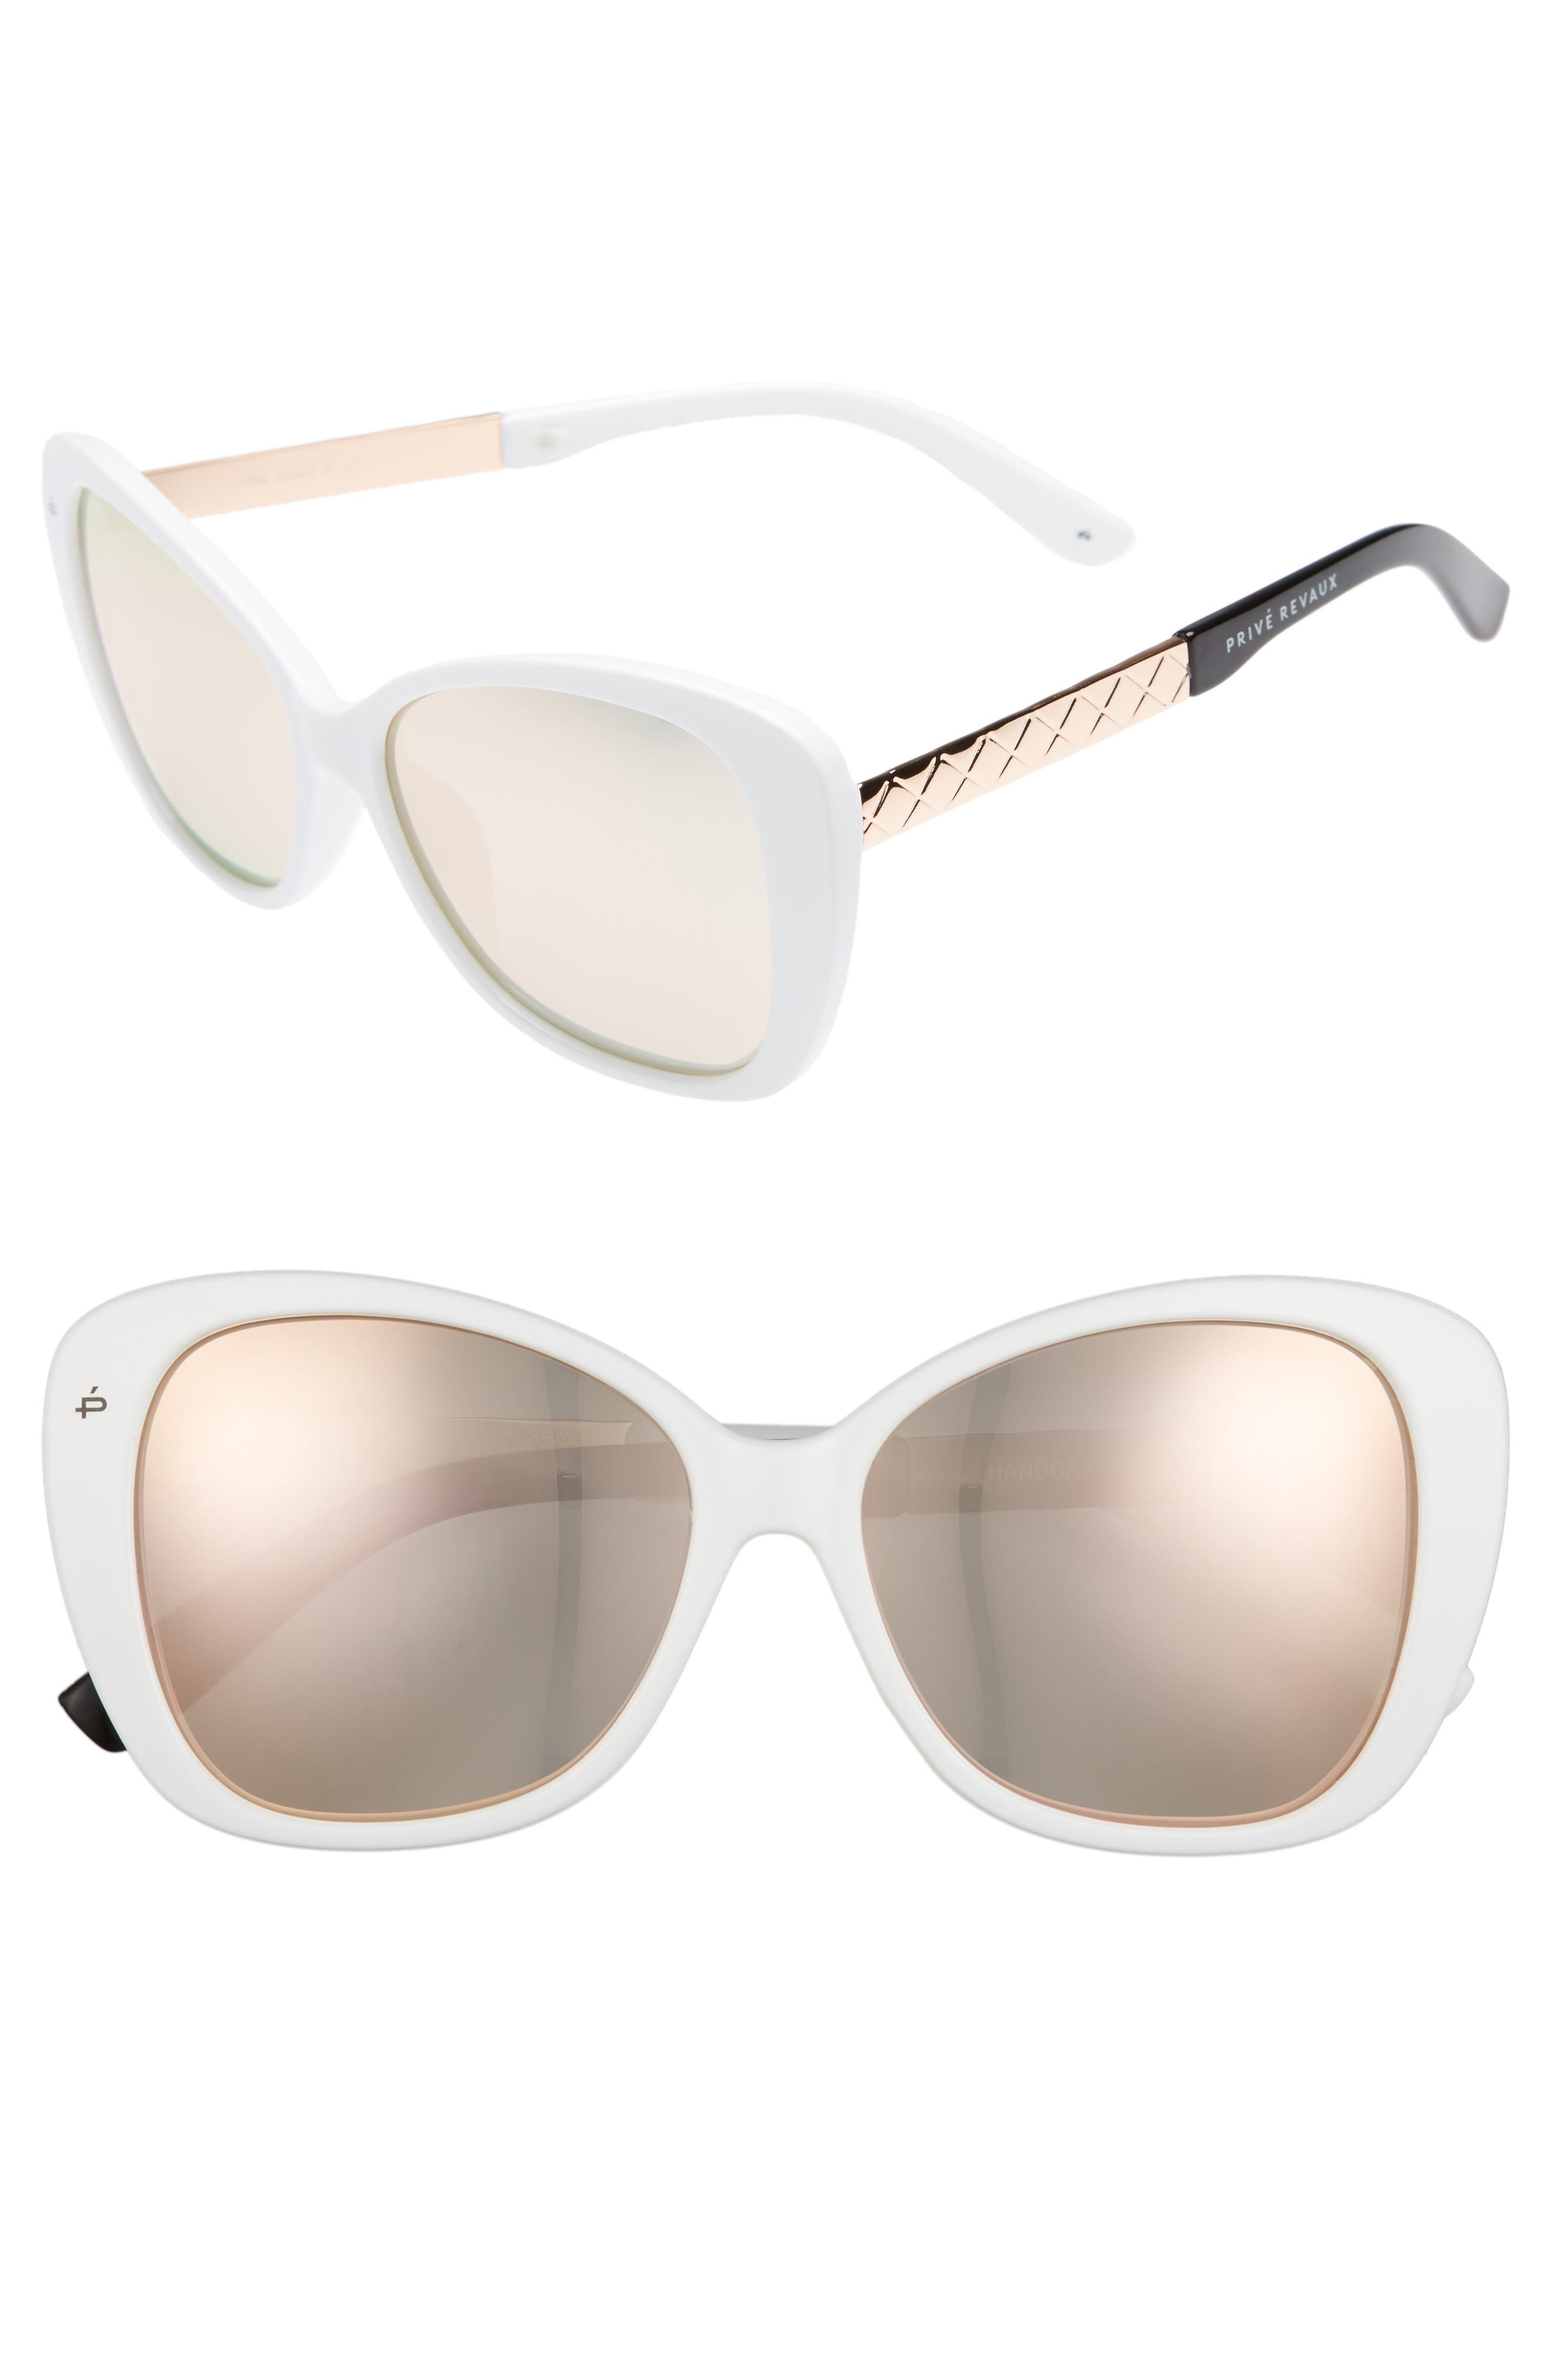 Privé Revaux The Jackie O 56mm Cat Eye Sunglasses,                             Main thumbnail 1, color,                             100